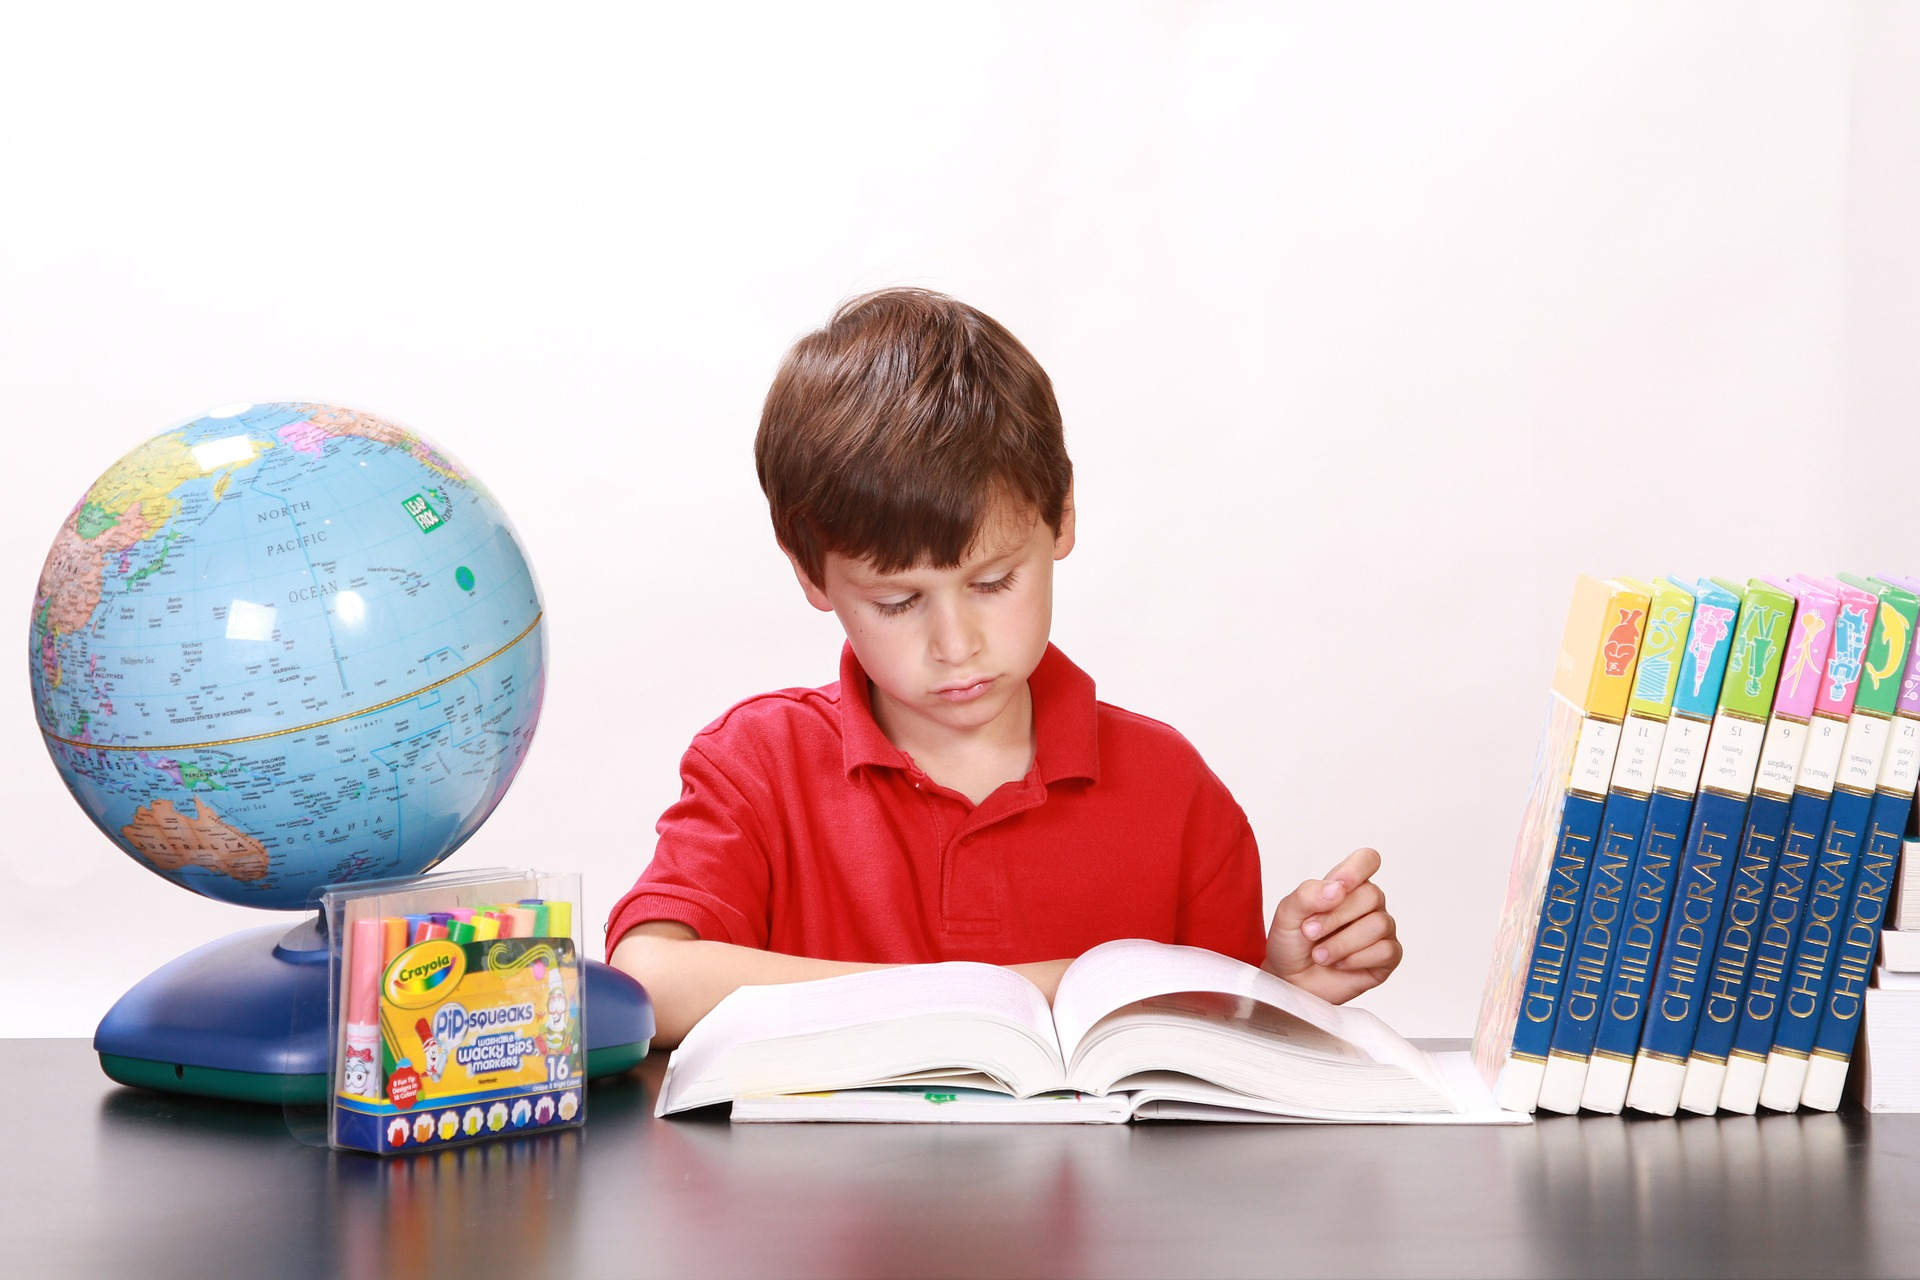 Learning Related Vision Problems in Children